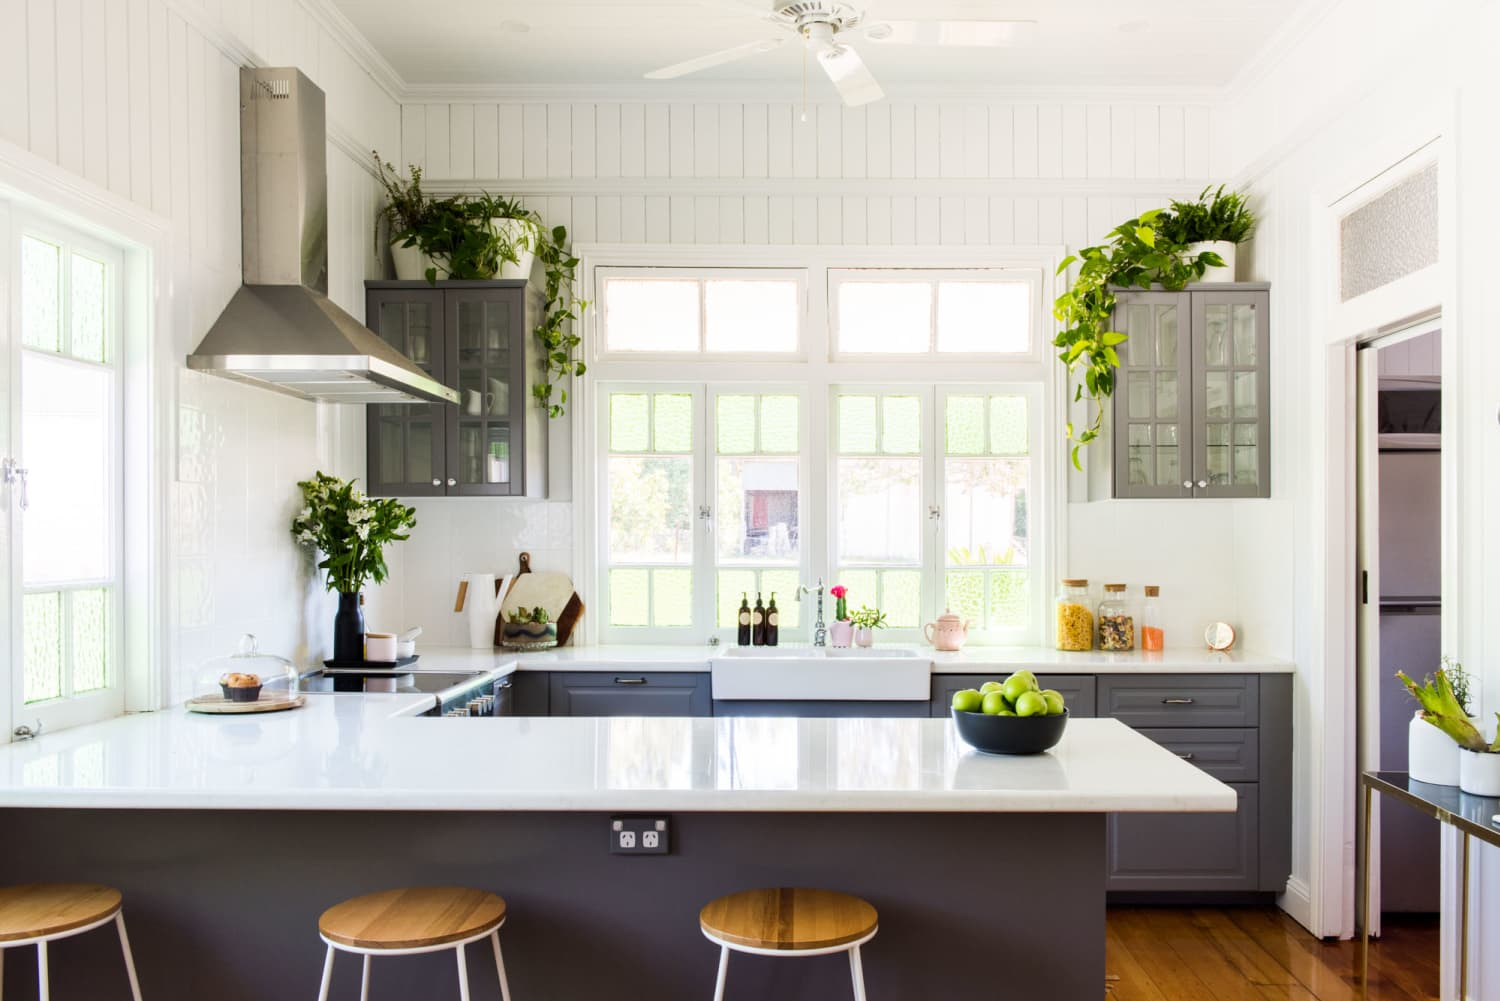 20 Gorgeous Gray Kitchen Ideas That are Timeless and Charming—Not Boring